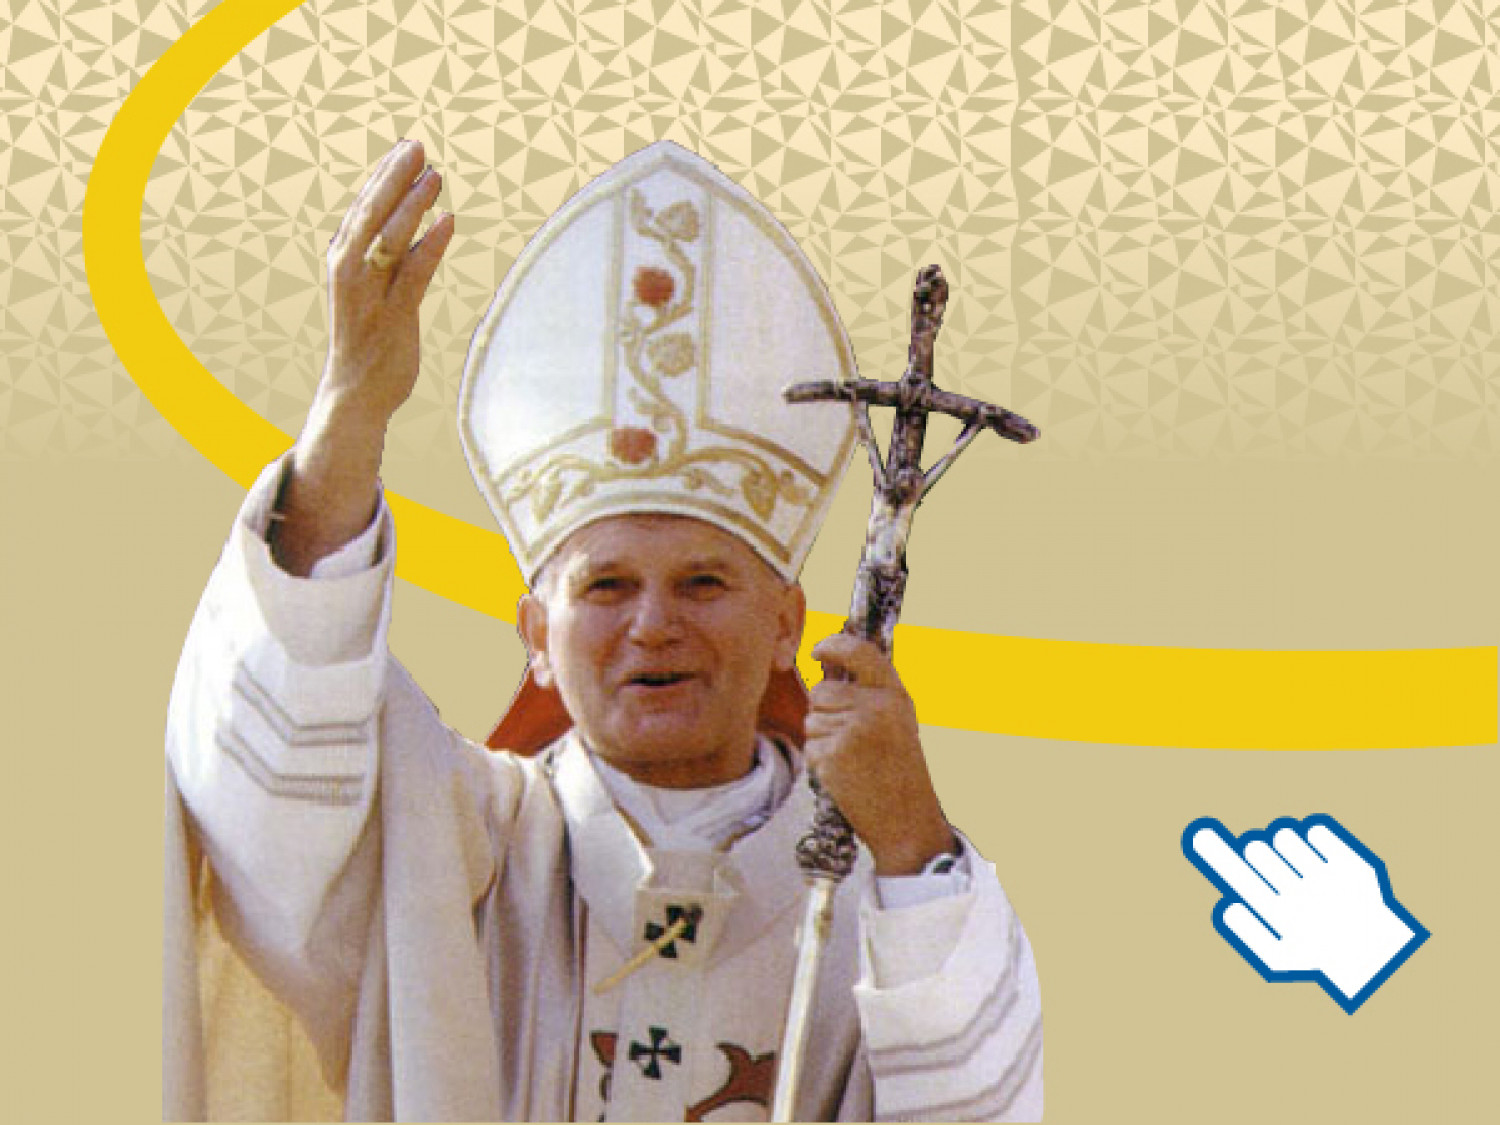 Canonization of John Paul II. Infographic